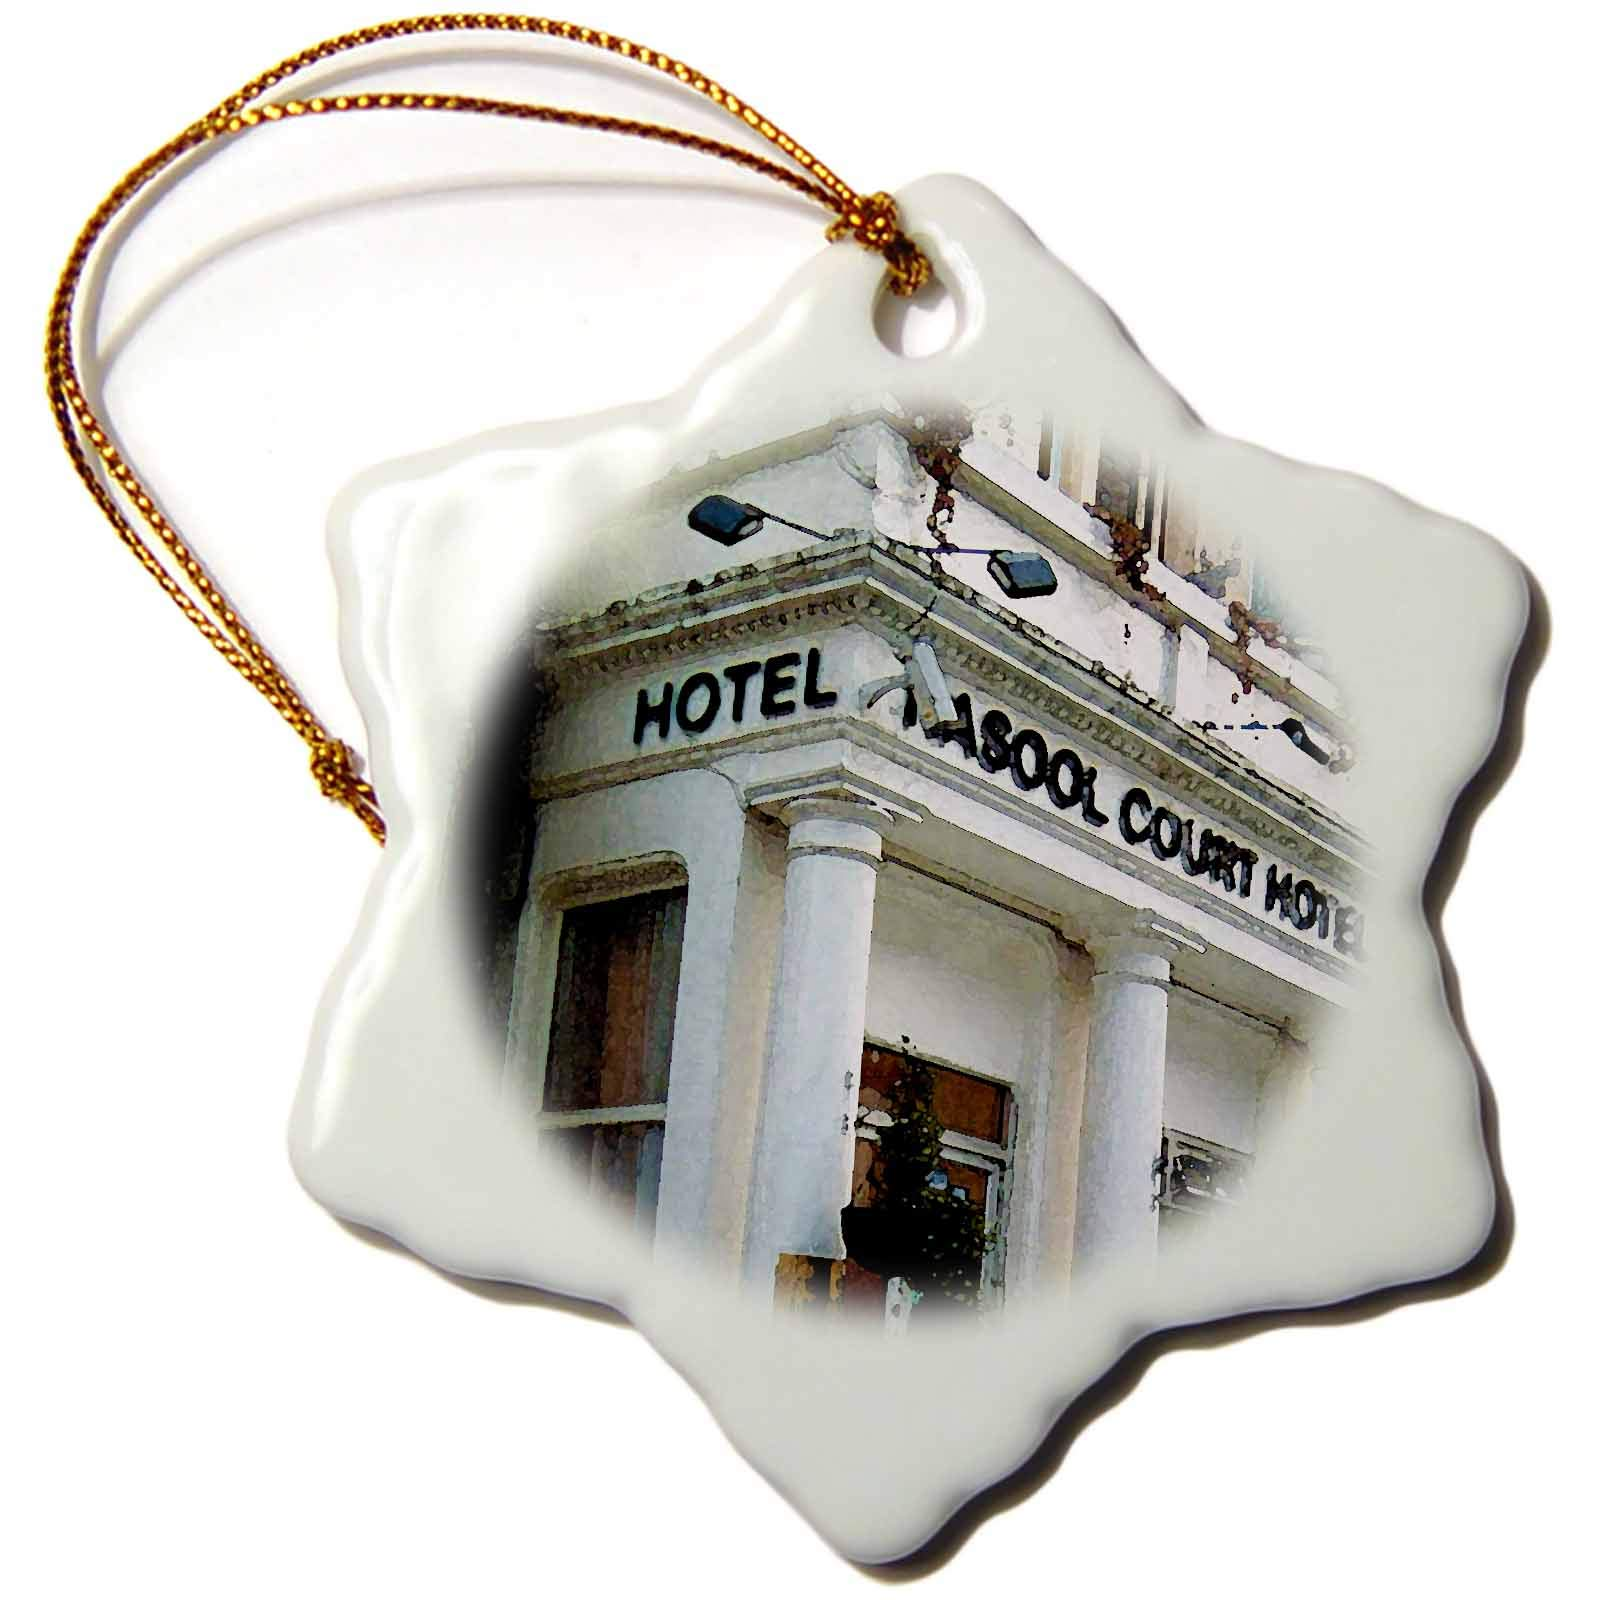 3dRose Jos Fauxtographee- London Watercolor Hotel - The Rasool Hotel in London Done in a Watercolor Effect - 3 inch Snowflake Porcelain Ornament (ORN_291340_1)